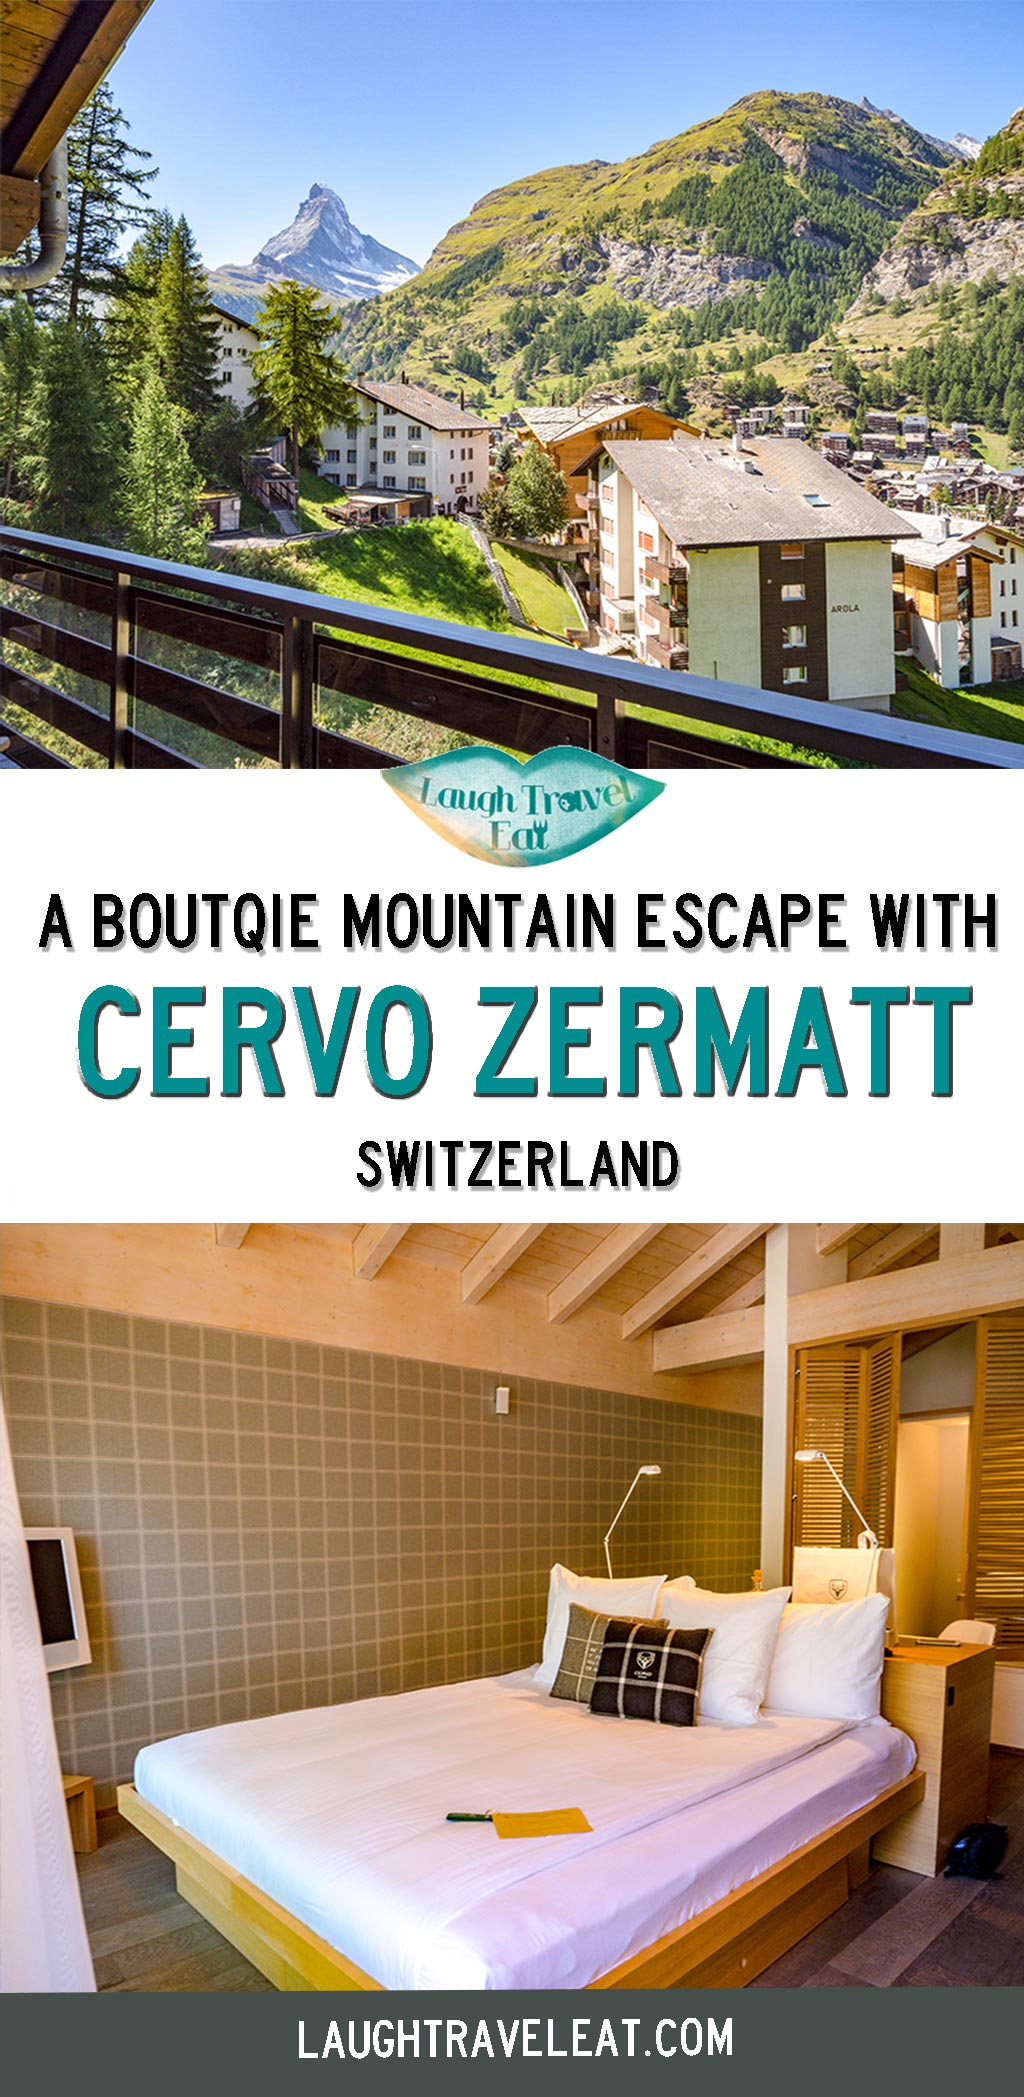 Picking a hotel to stay in Zermatt can be difficult. As a city that doesn't allow cars, location is important, as well as having a view of the Matterhorn and that all important Alpine style decor. Cervo Zermatt scores 10/10  for all of the factors above, with well rounded facilities, delicious cuisine, central location, and being in full view o f the Matterhorn. Here's a review on my stay: #Zermatt #Switzerland